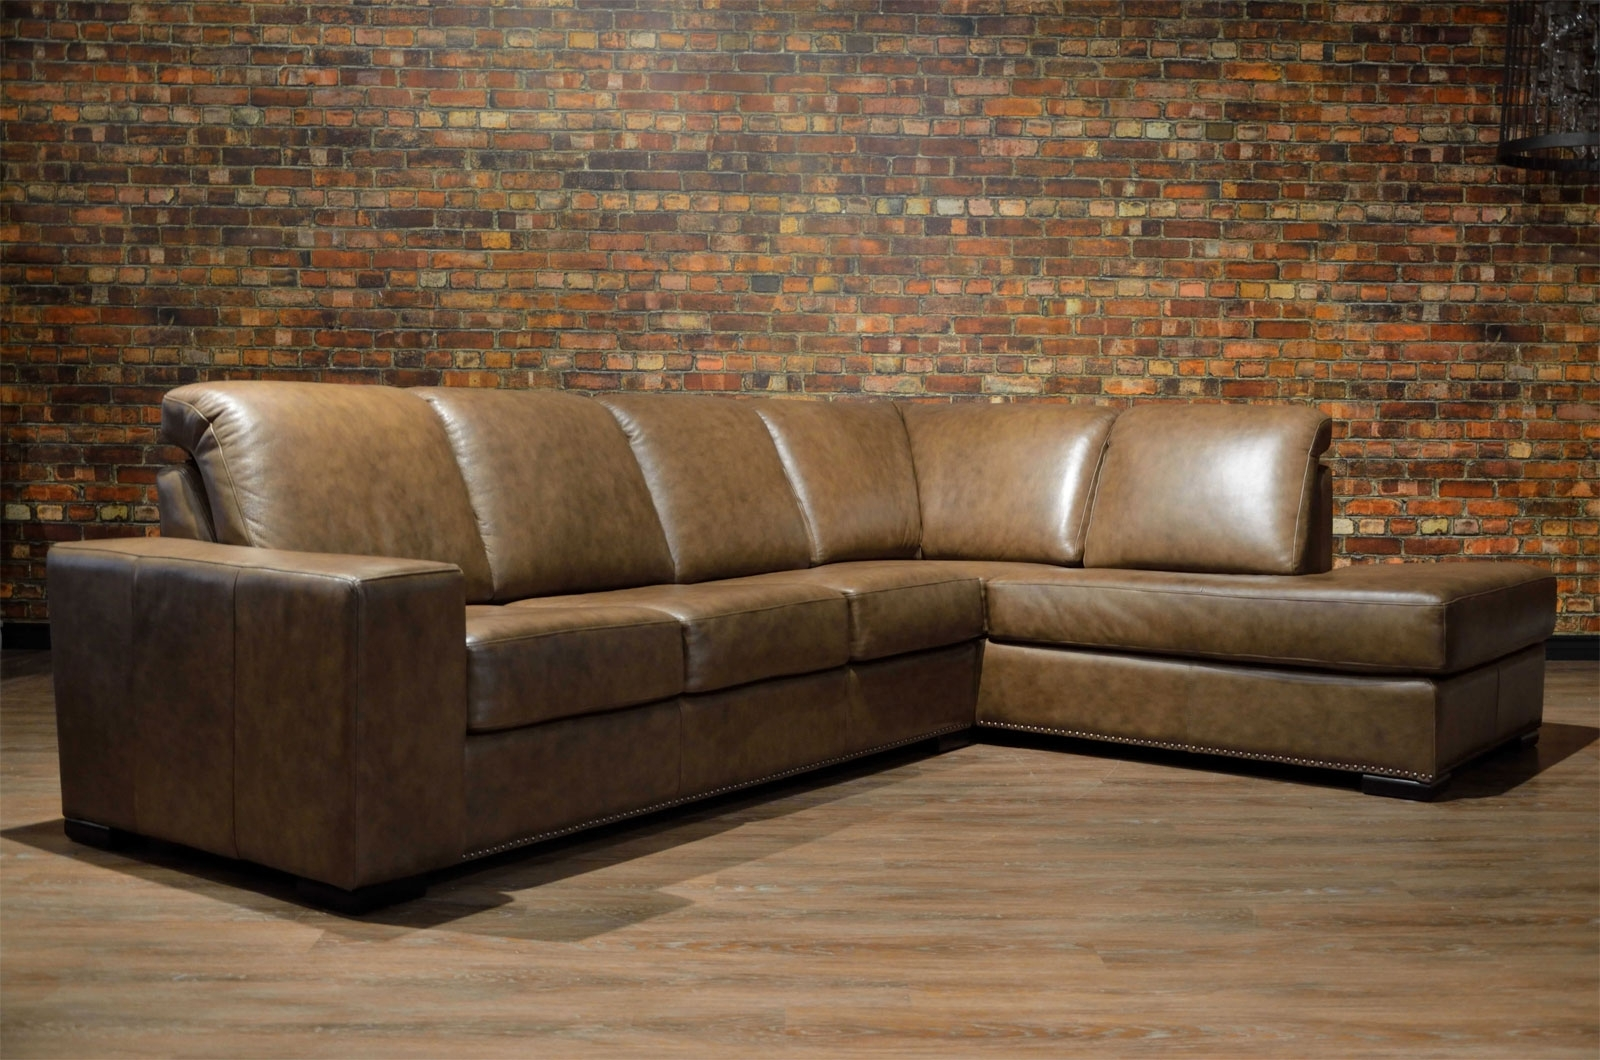 Leather Sofa & Sectional – Choose Color, Leather & Size | Boss Regarding Sectional Sofas At Bc Canada (View 12 of 15)